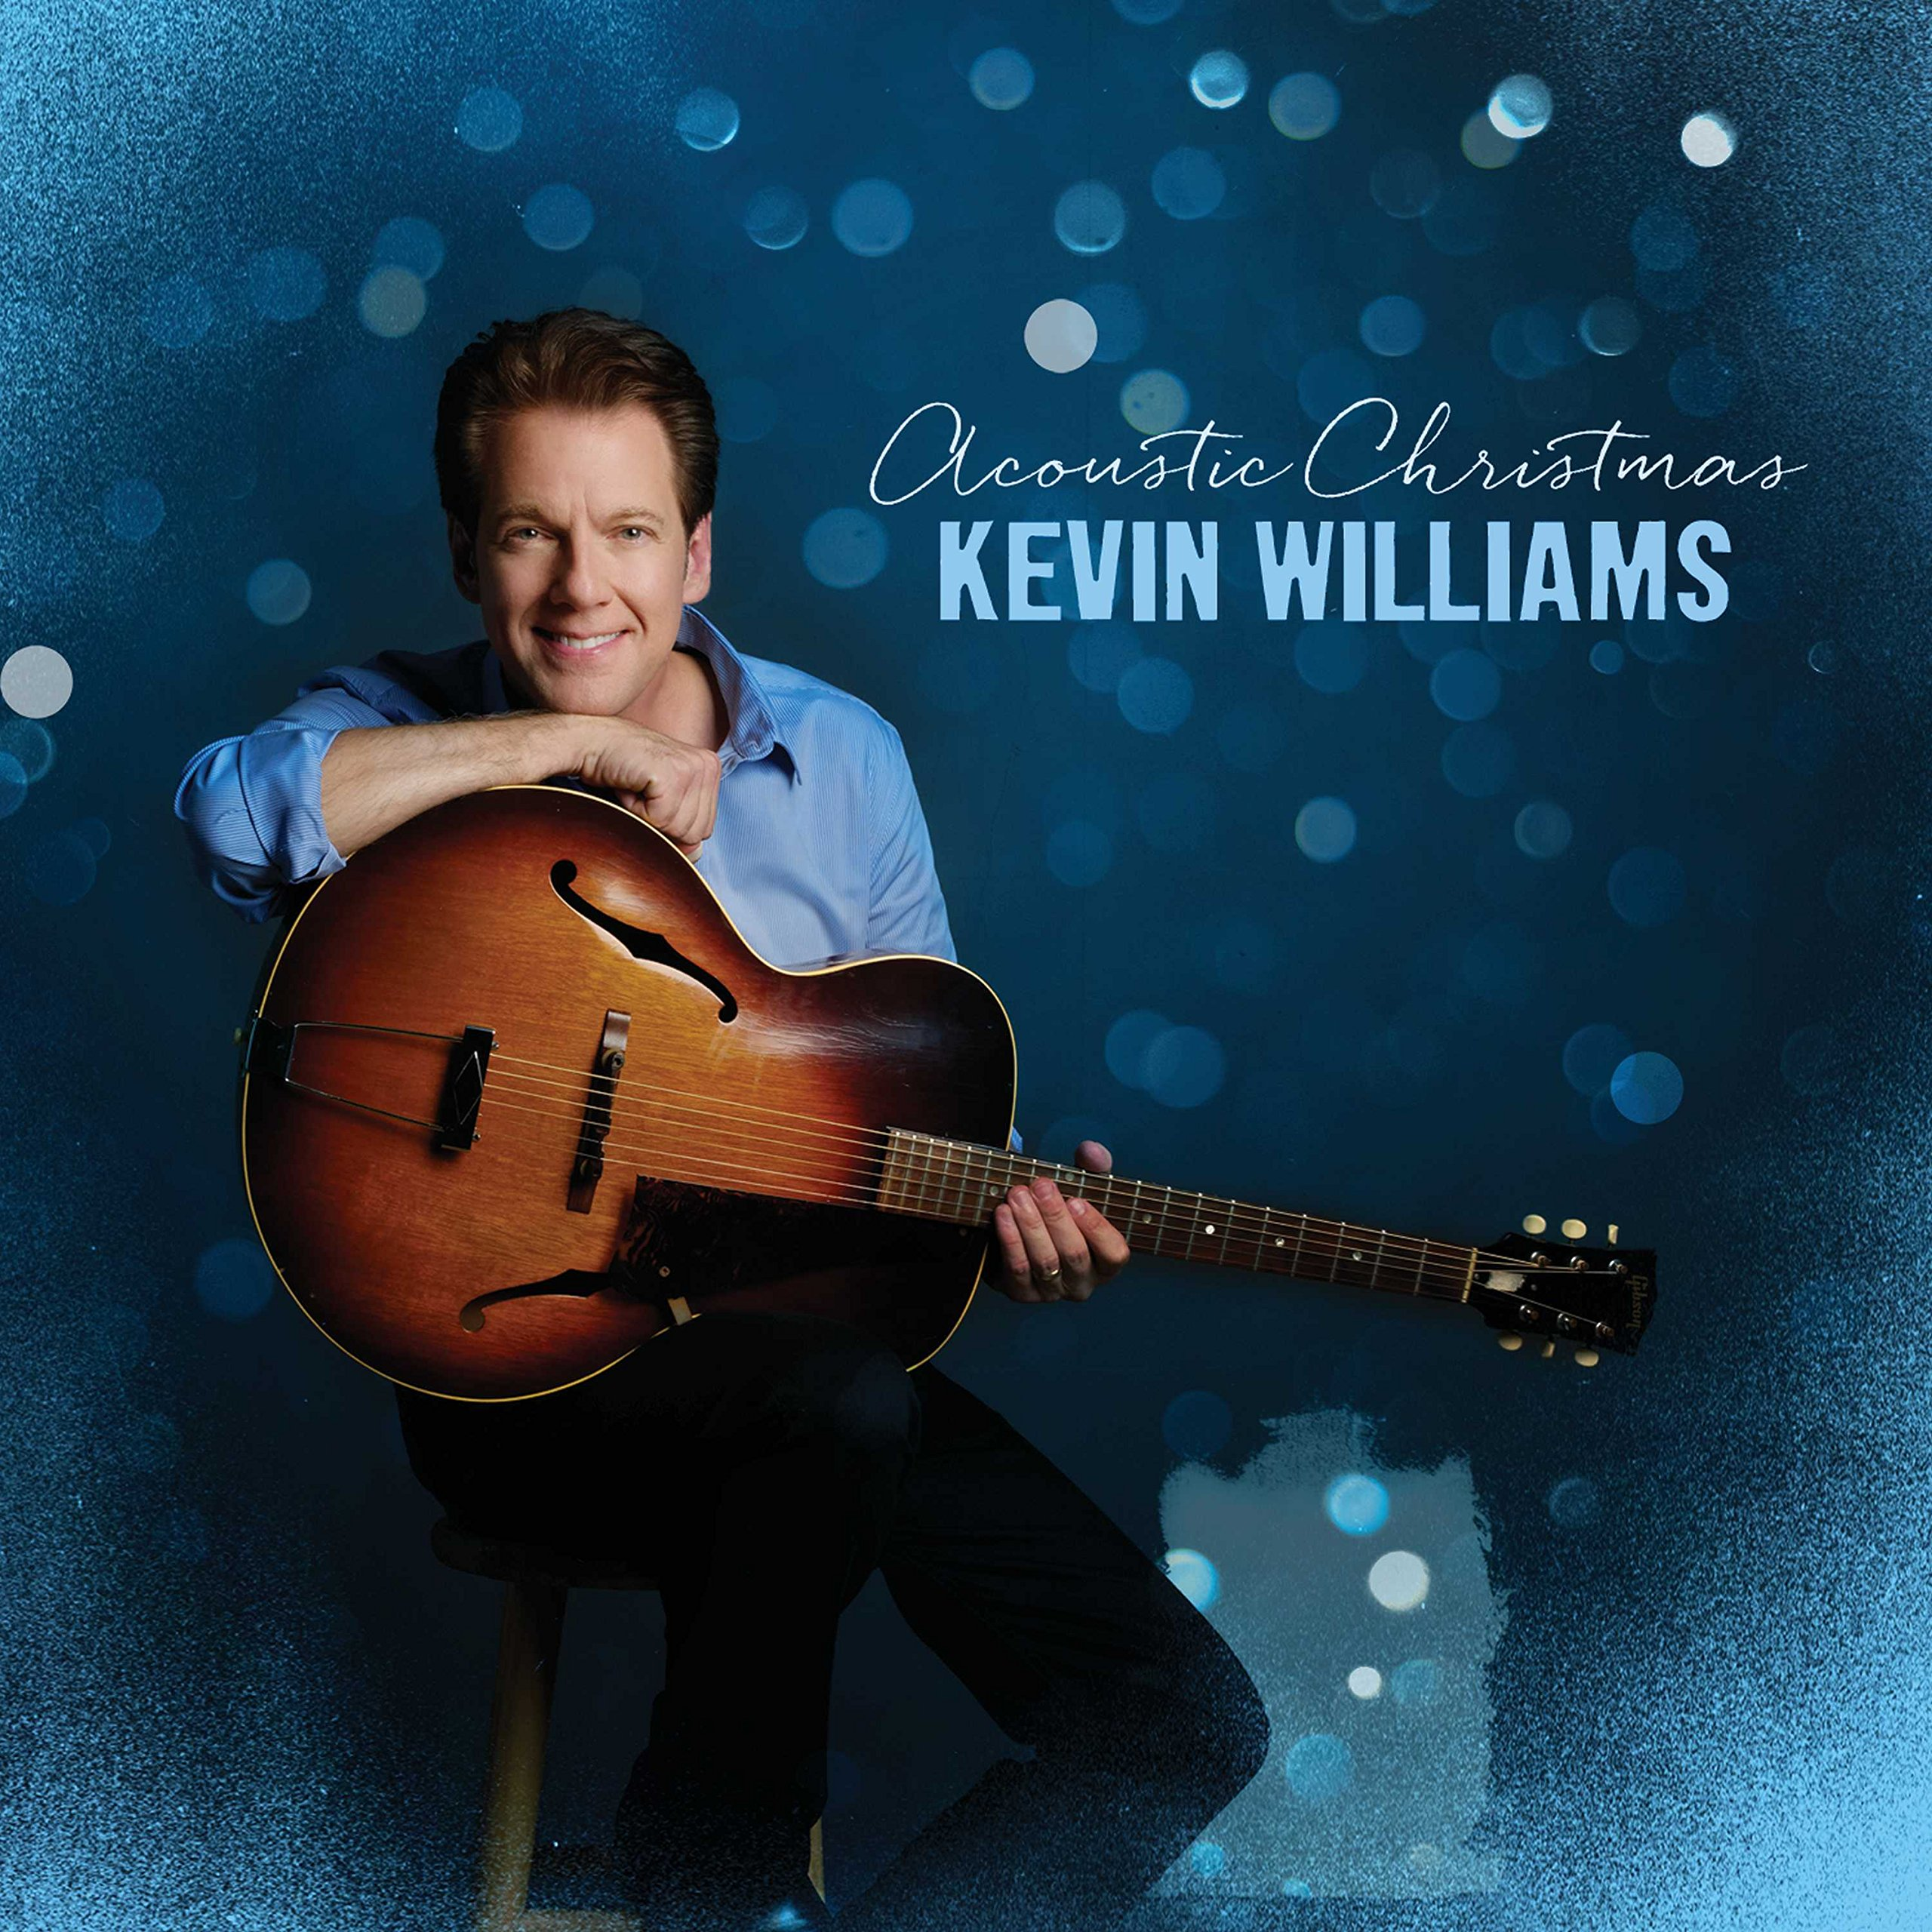 CD : Kevin Williams - Acoustic Christmas